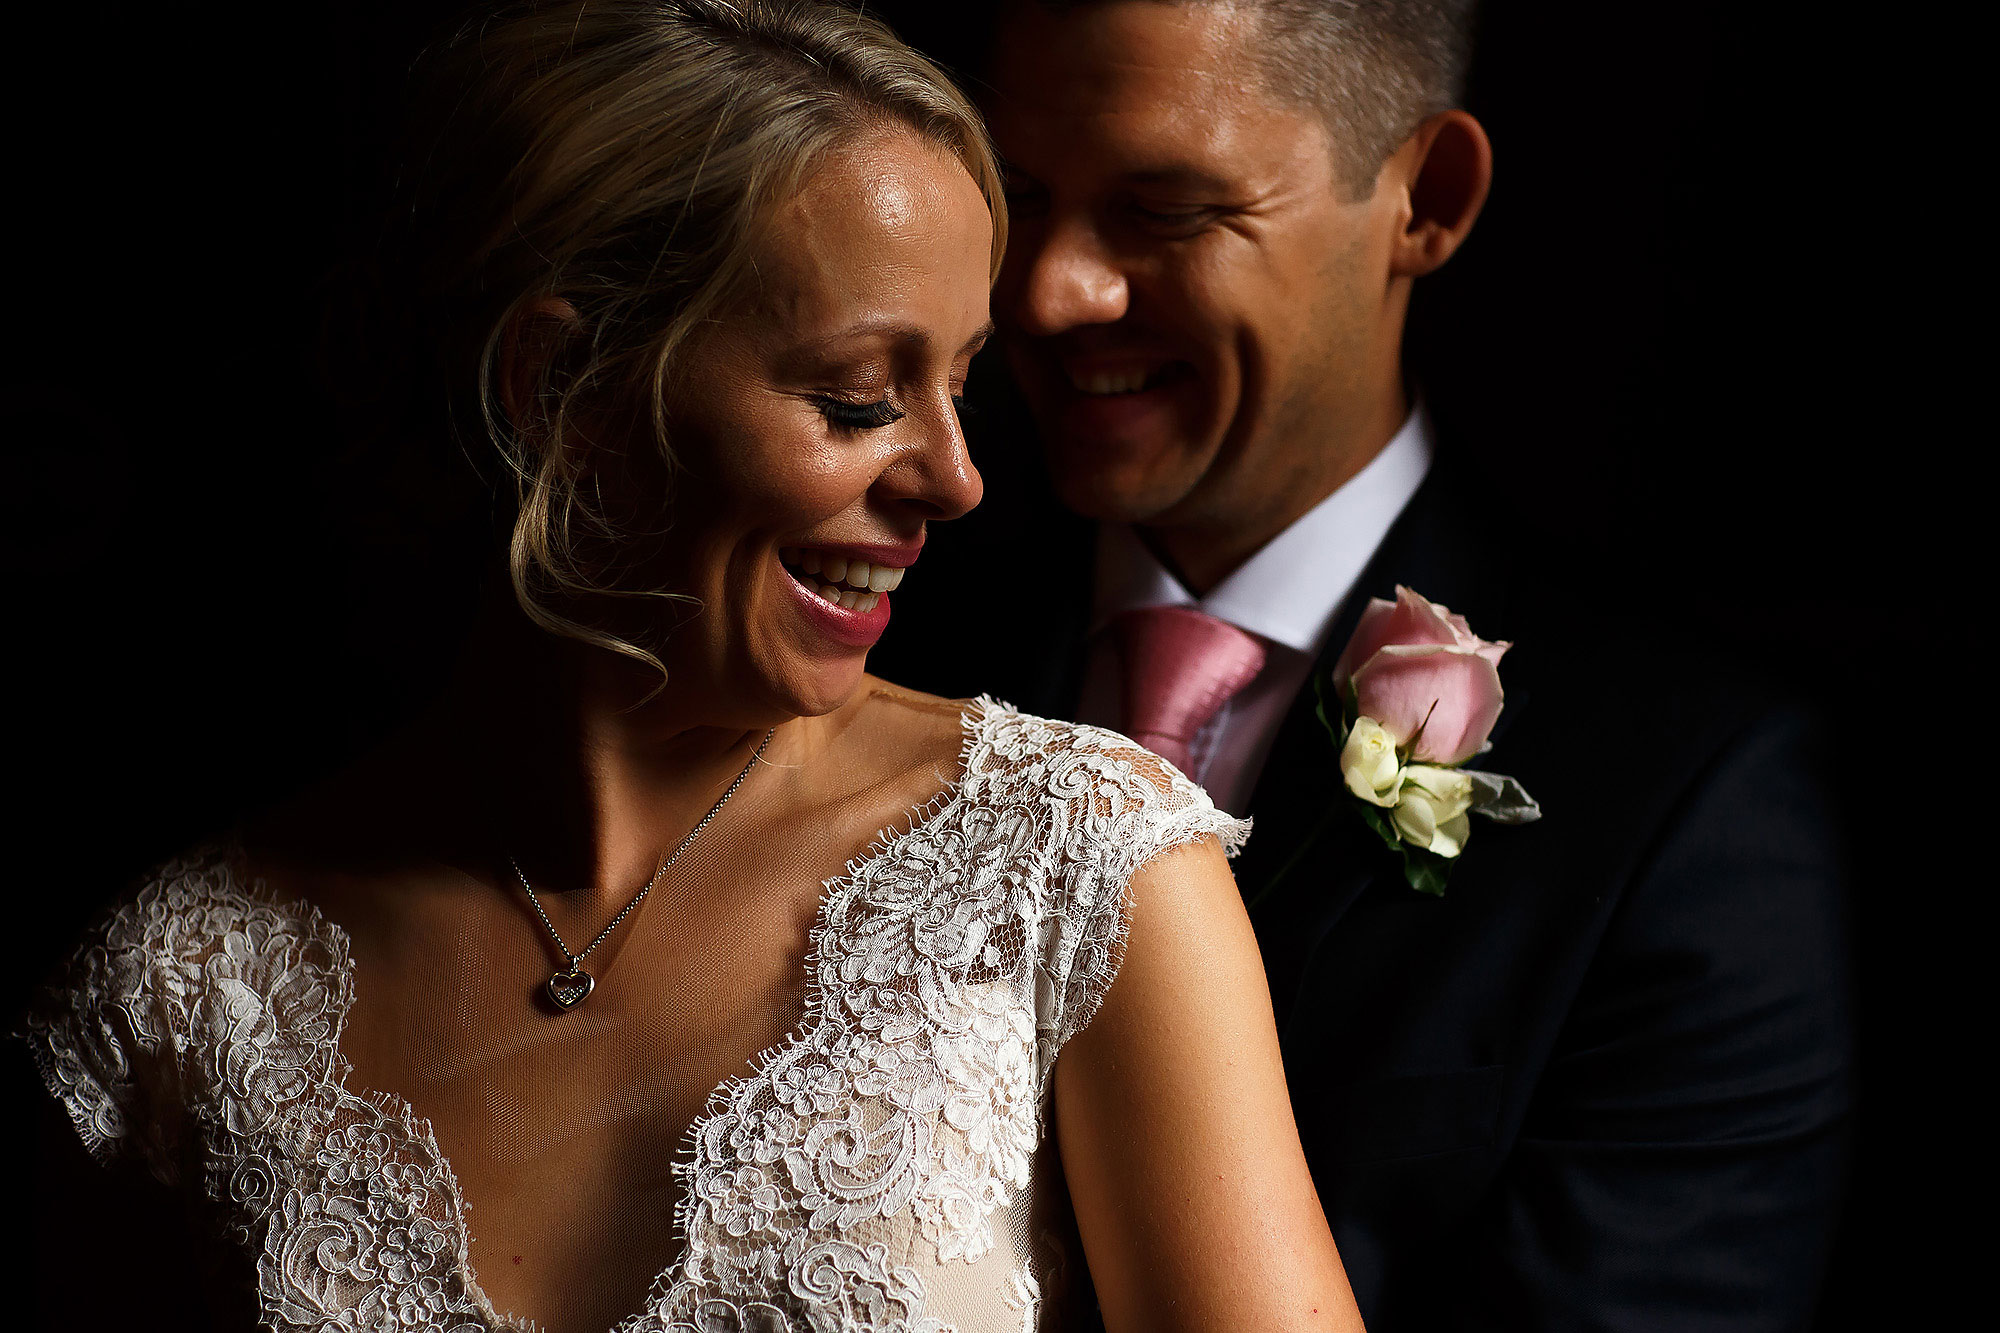 Bride wearing v neck scalloped lace wedding dress with blonde hair as groom wearing pink button hole hugs her from behind | Peckforton Castle Wedding by Toni Darcy Photography